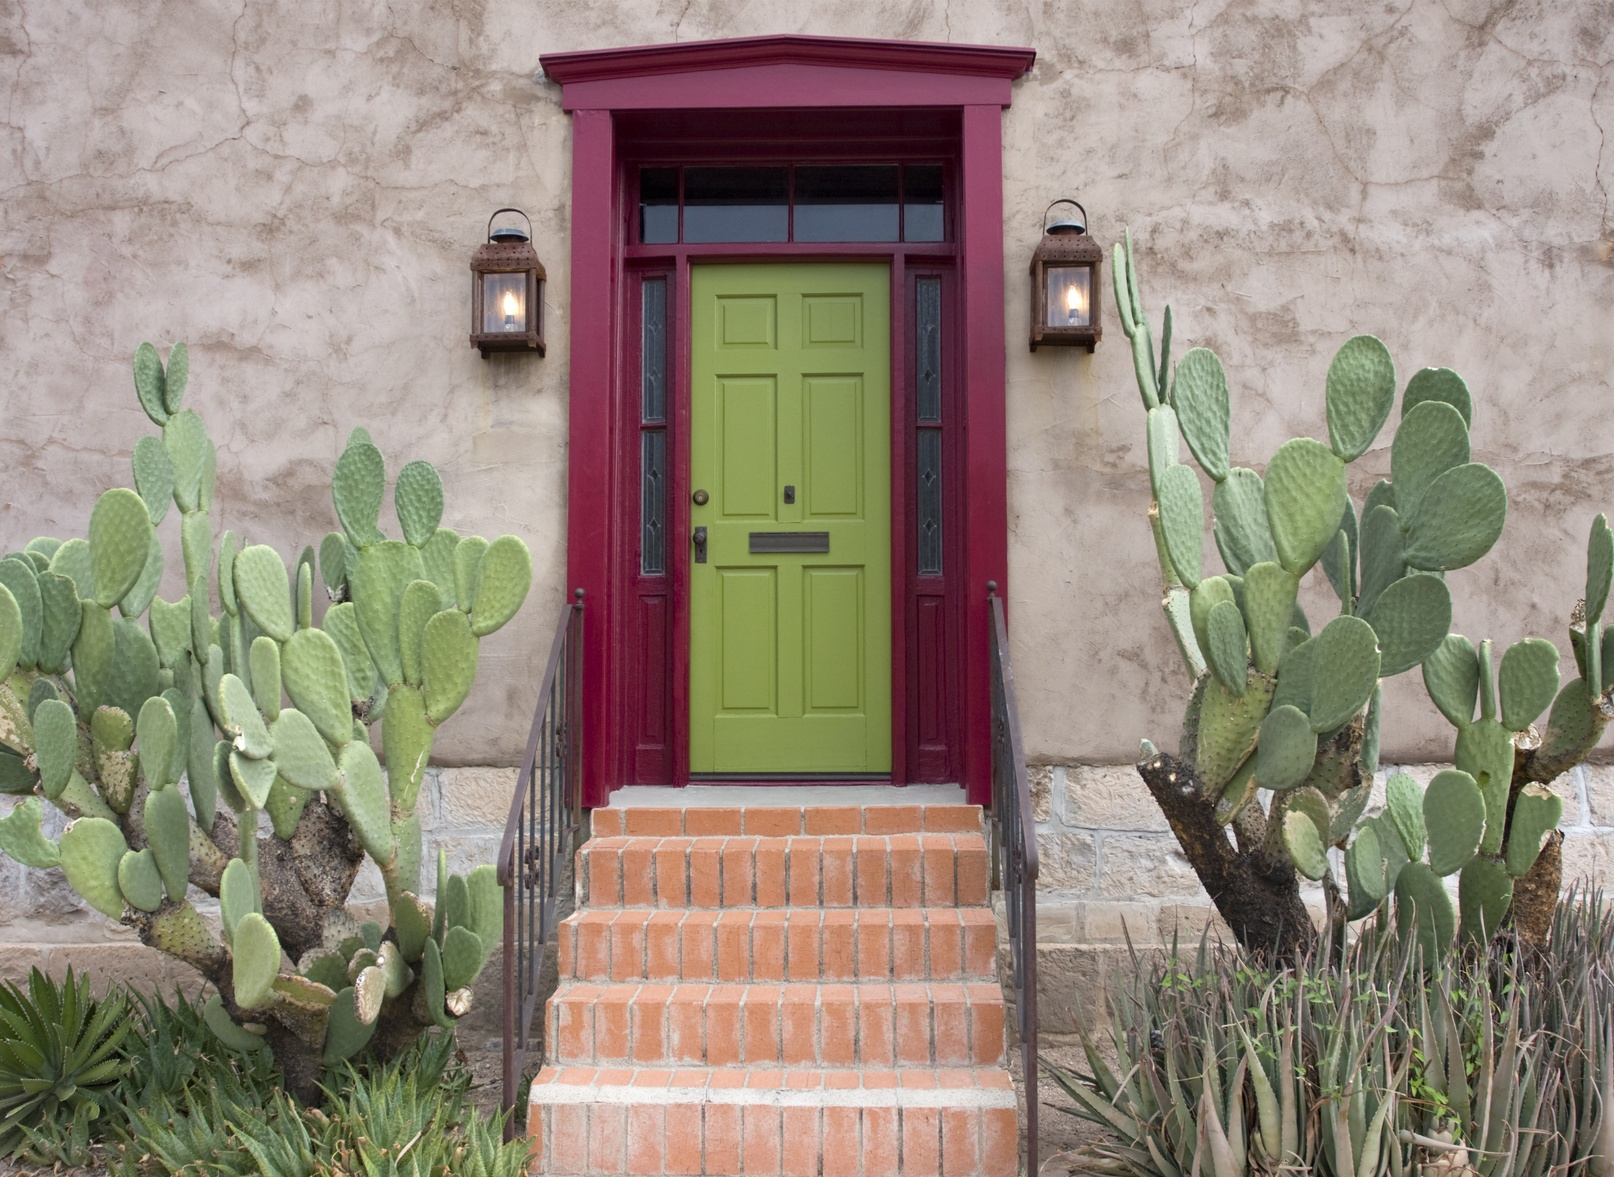 Colorful townhouse door in Ahwatukee AZ